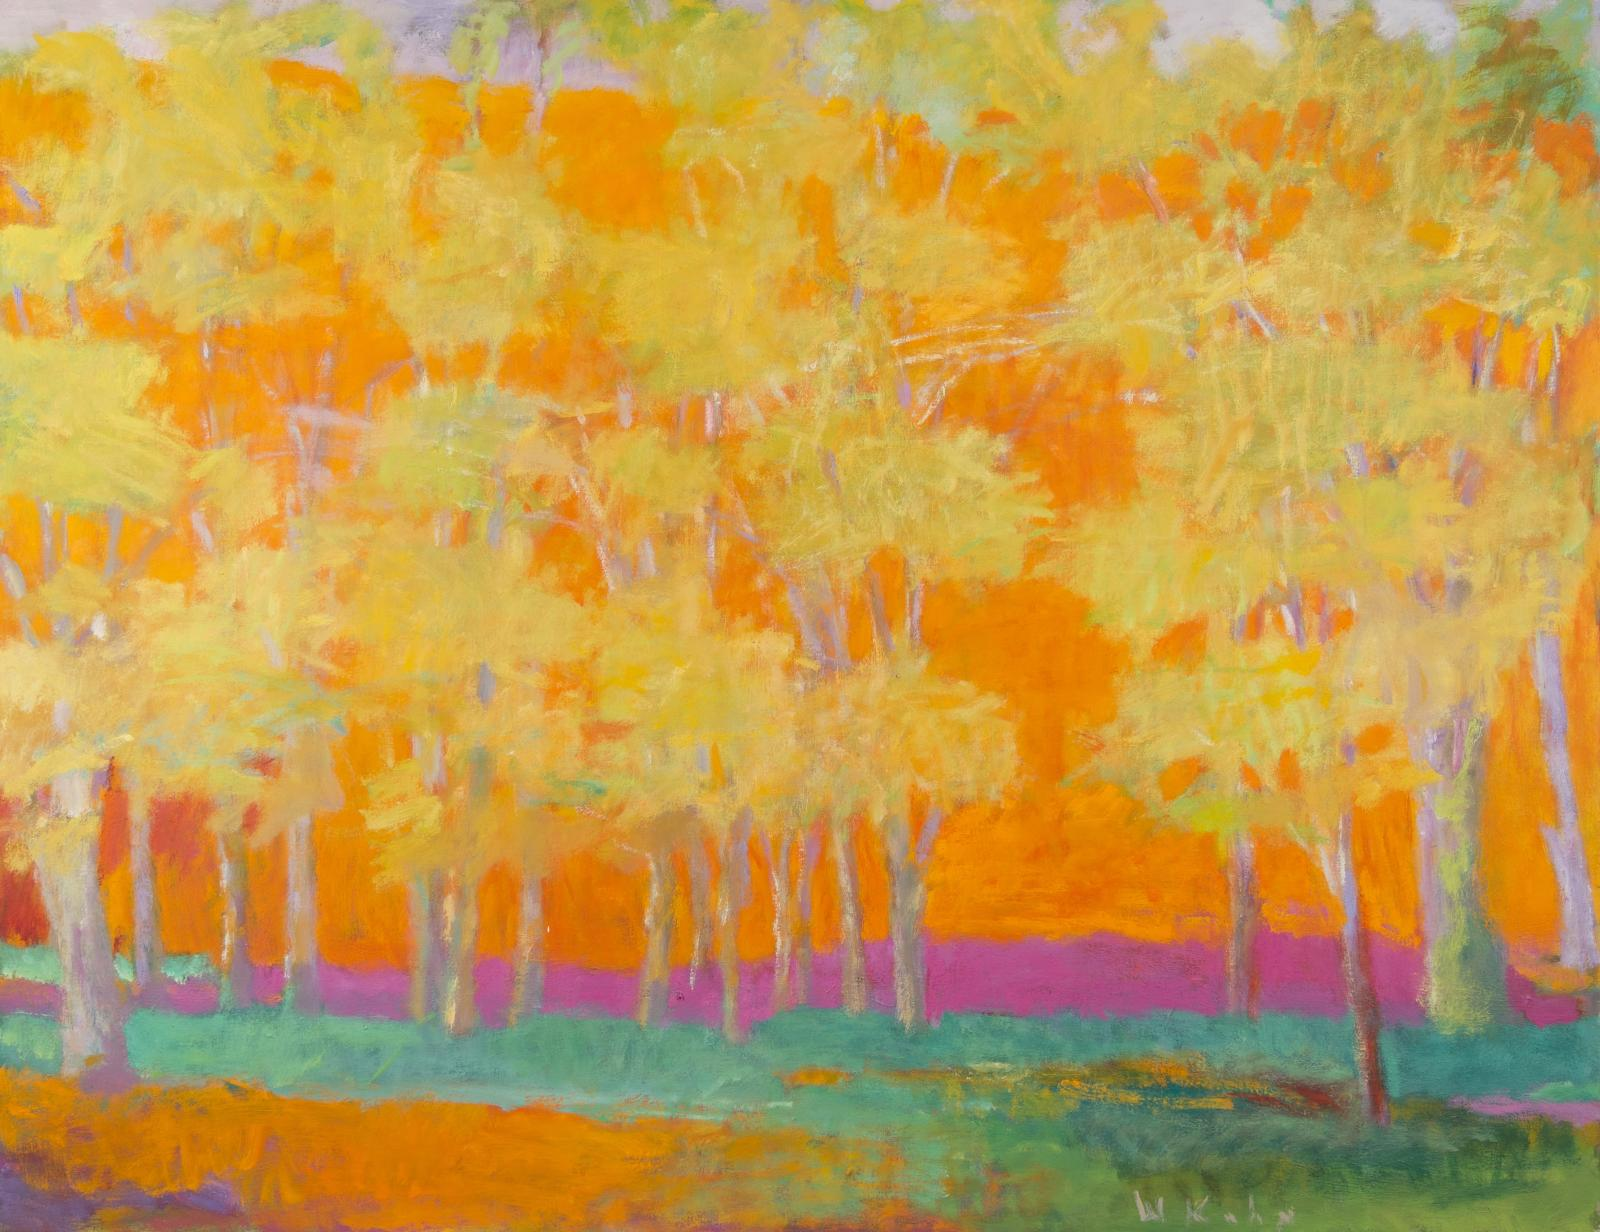 Wolf Kahn, Trees Against a Red Rising, 1993